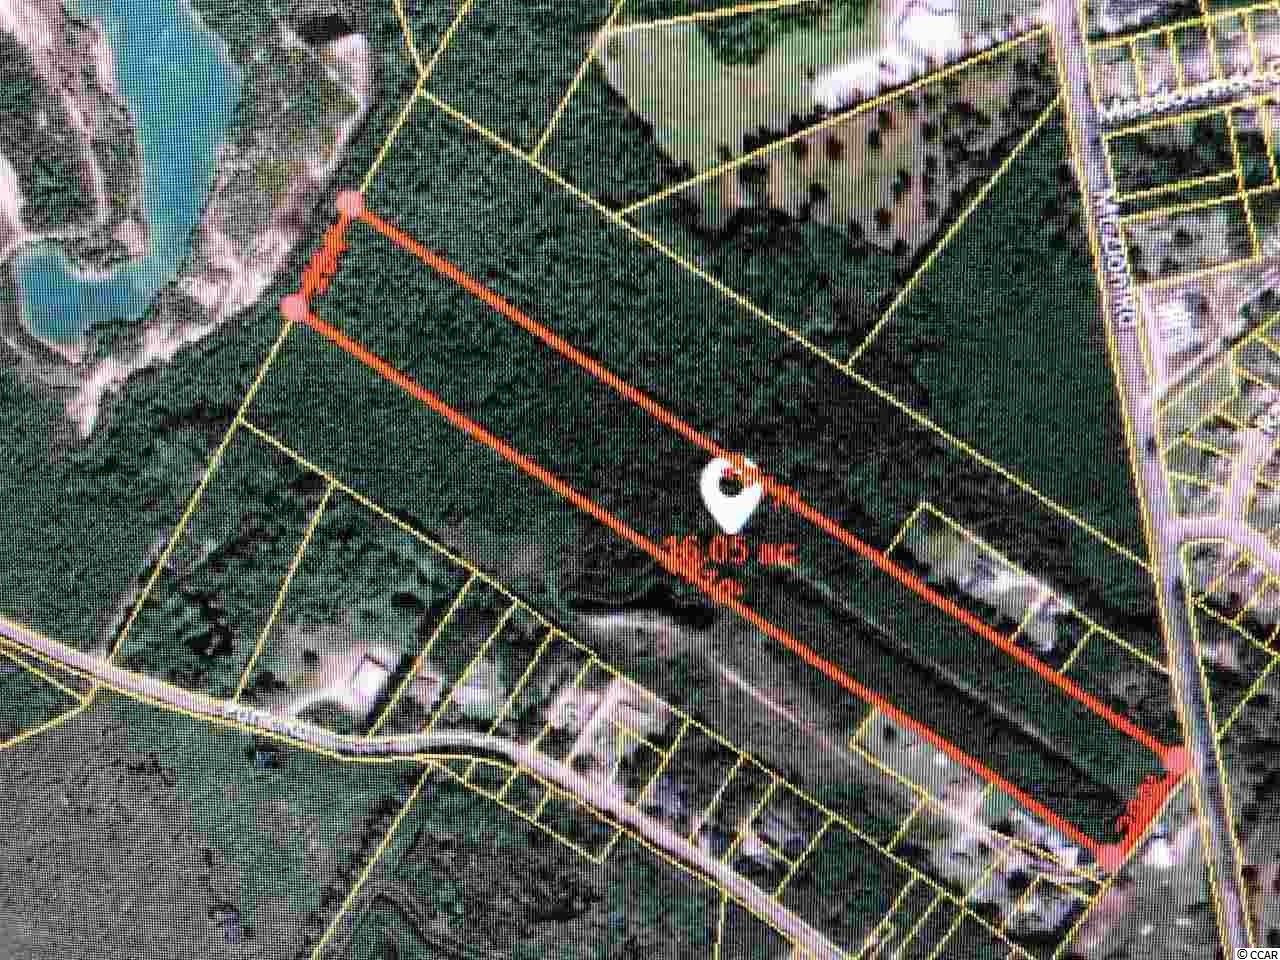 Beautiful 17+/- acres of mature wooded land located on Mt. Zion Rd. in Little River.  In a great location near the North Myrtle Beach Sports Complex and Hwy 31 with quick access to North Myrtle Beach just across the Robert Edge Bridge. This property has endless potential for developers as well as individuals.